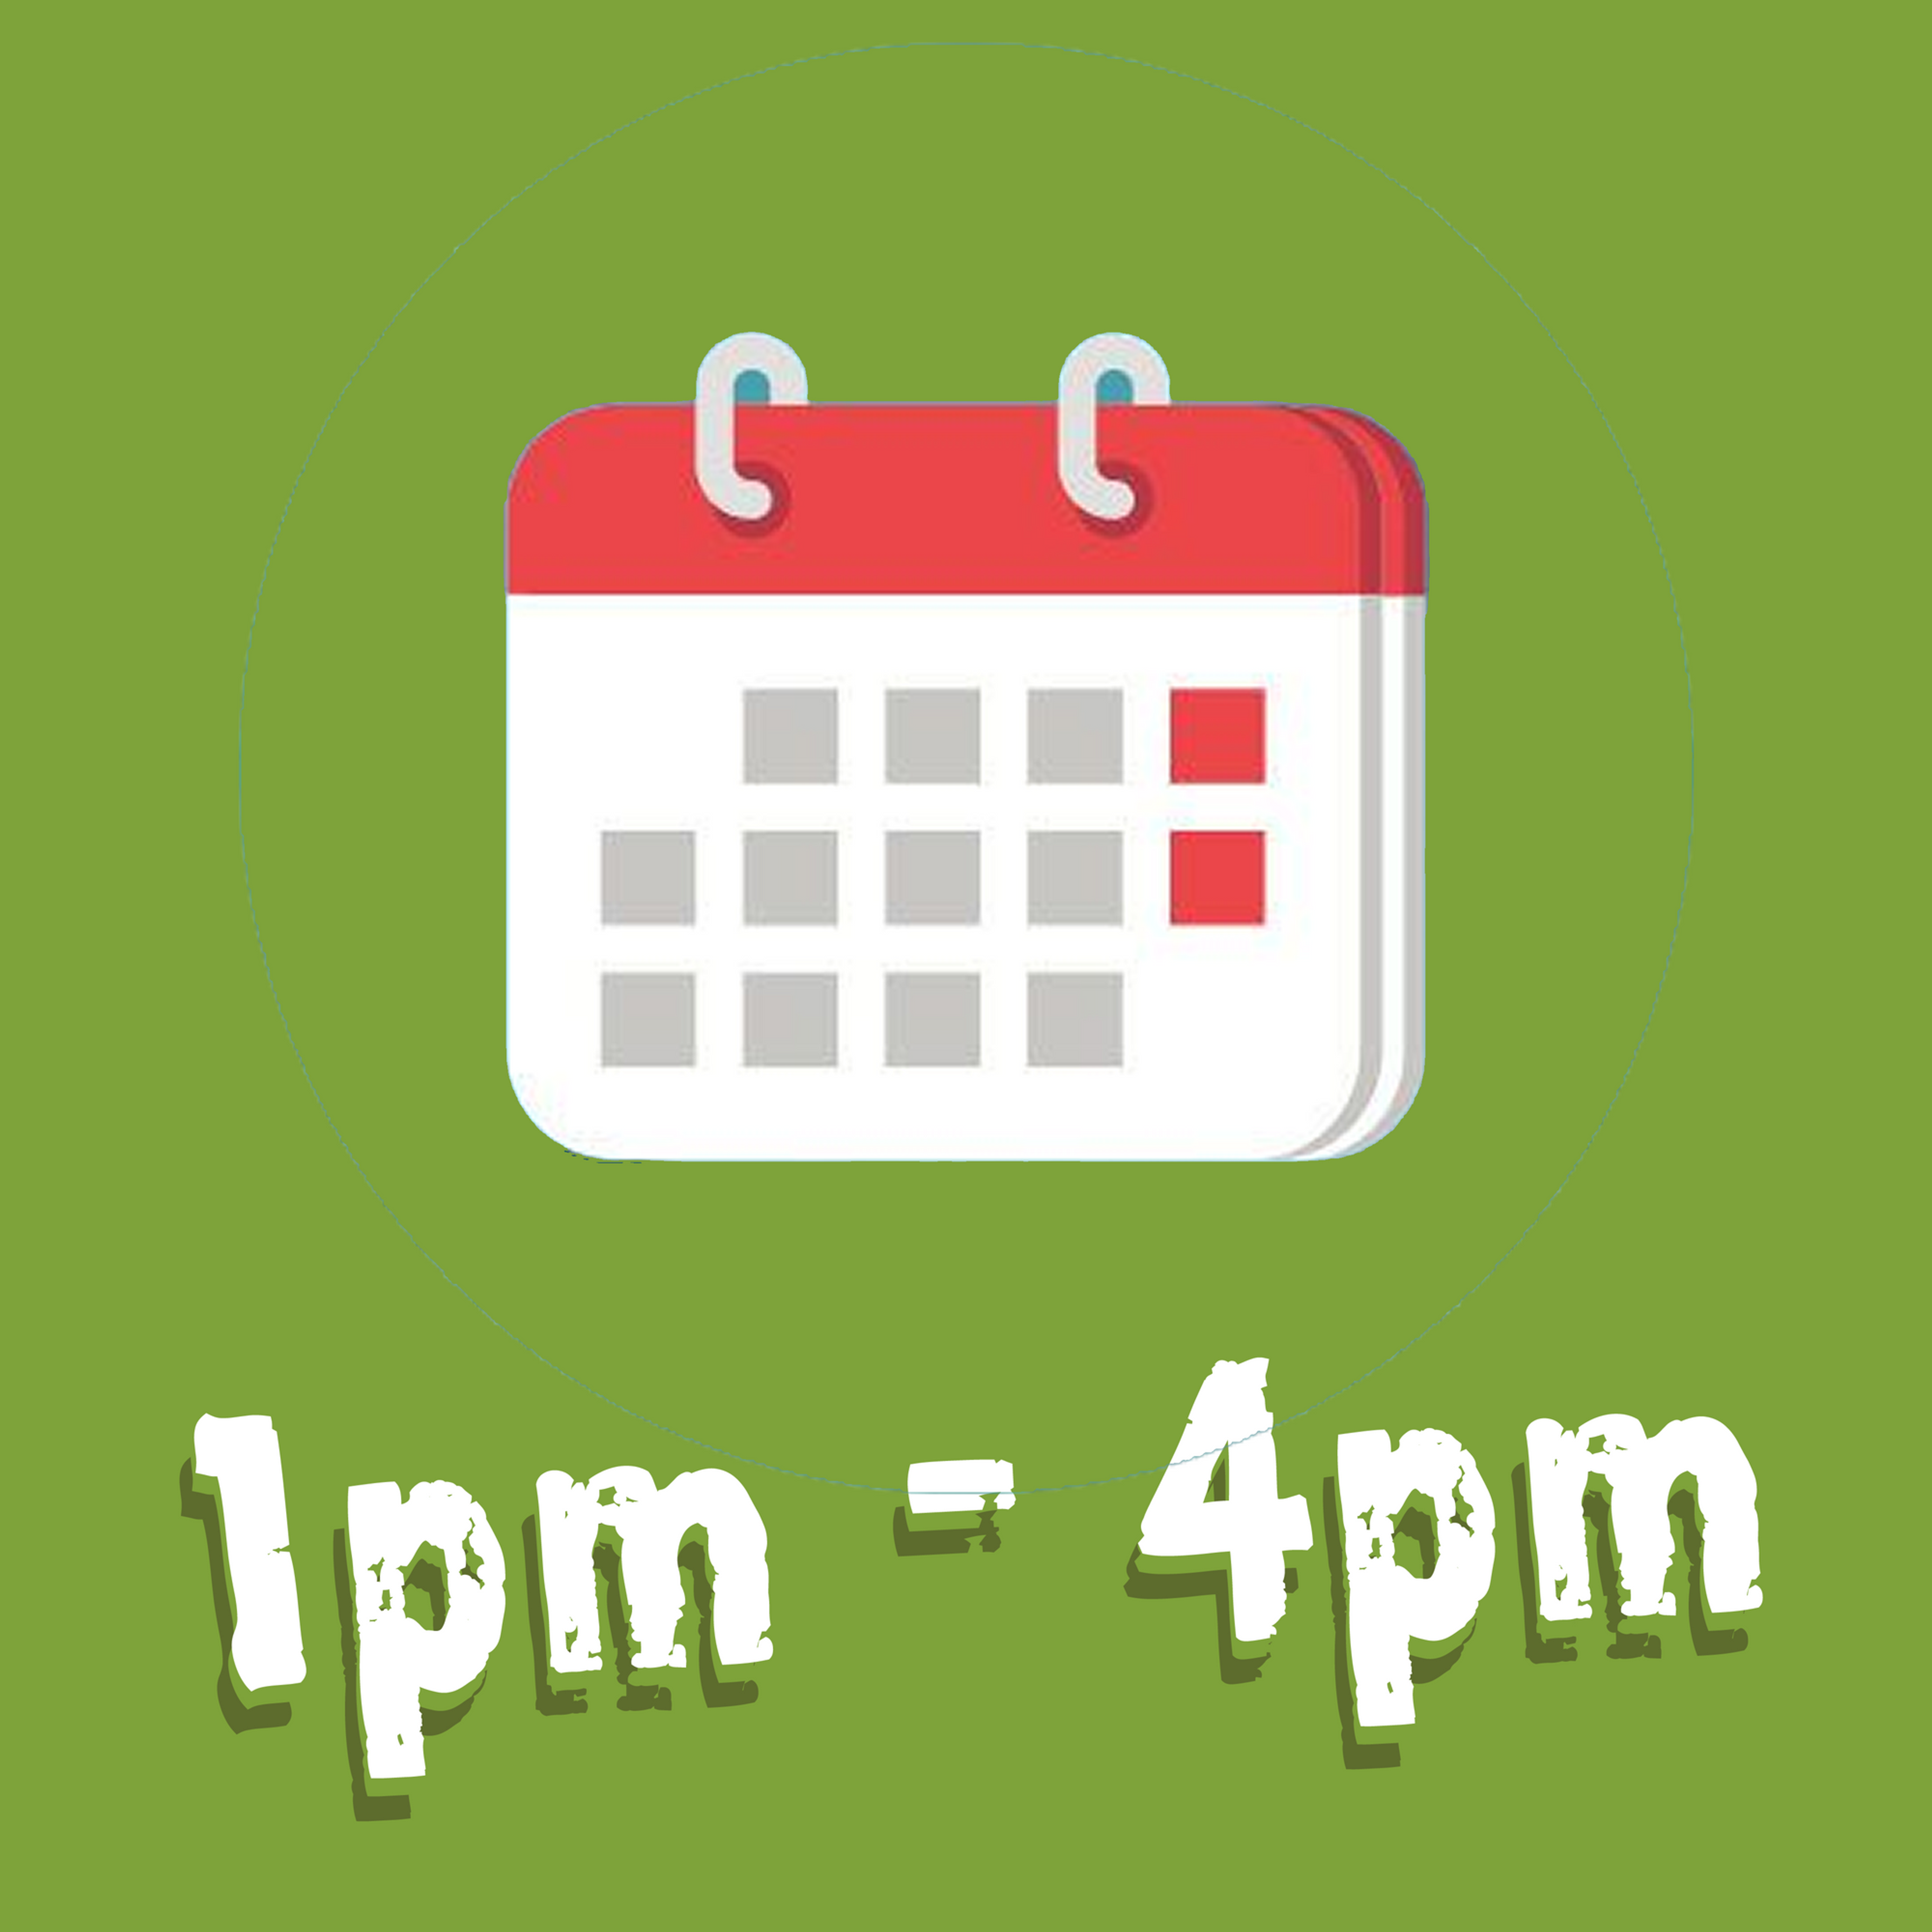 Afternoon 1pm - 4pm (Weekends/Holidays)